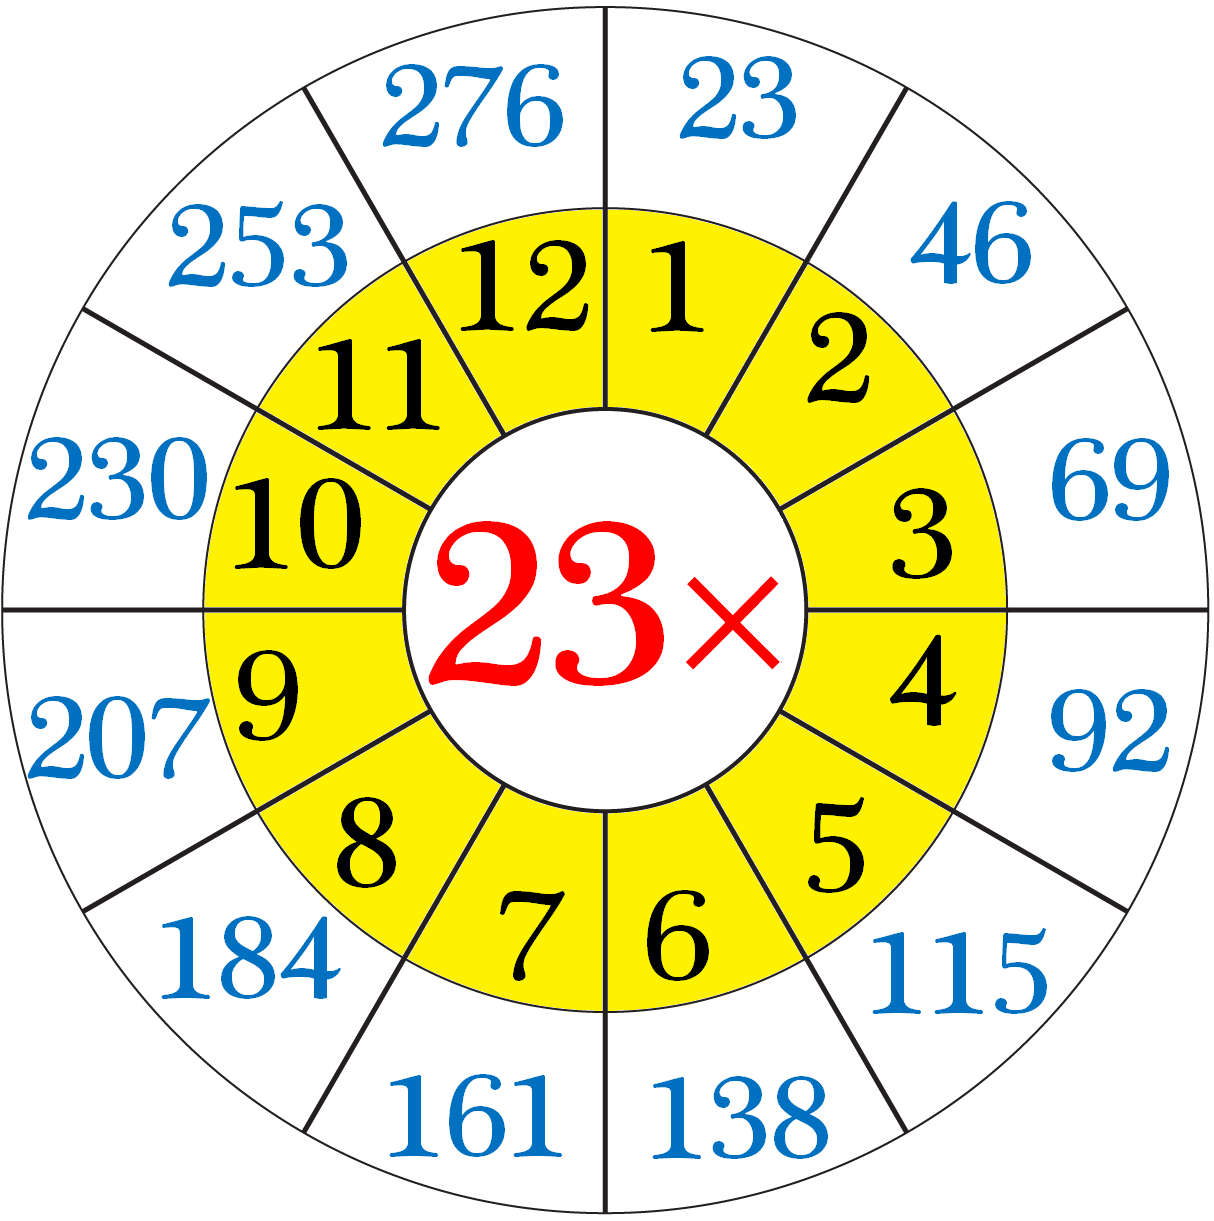 Multiplication Table of 23